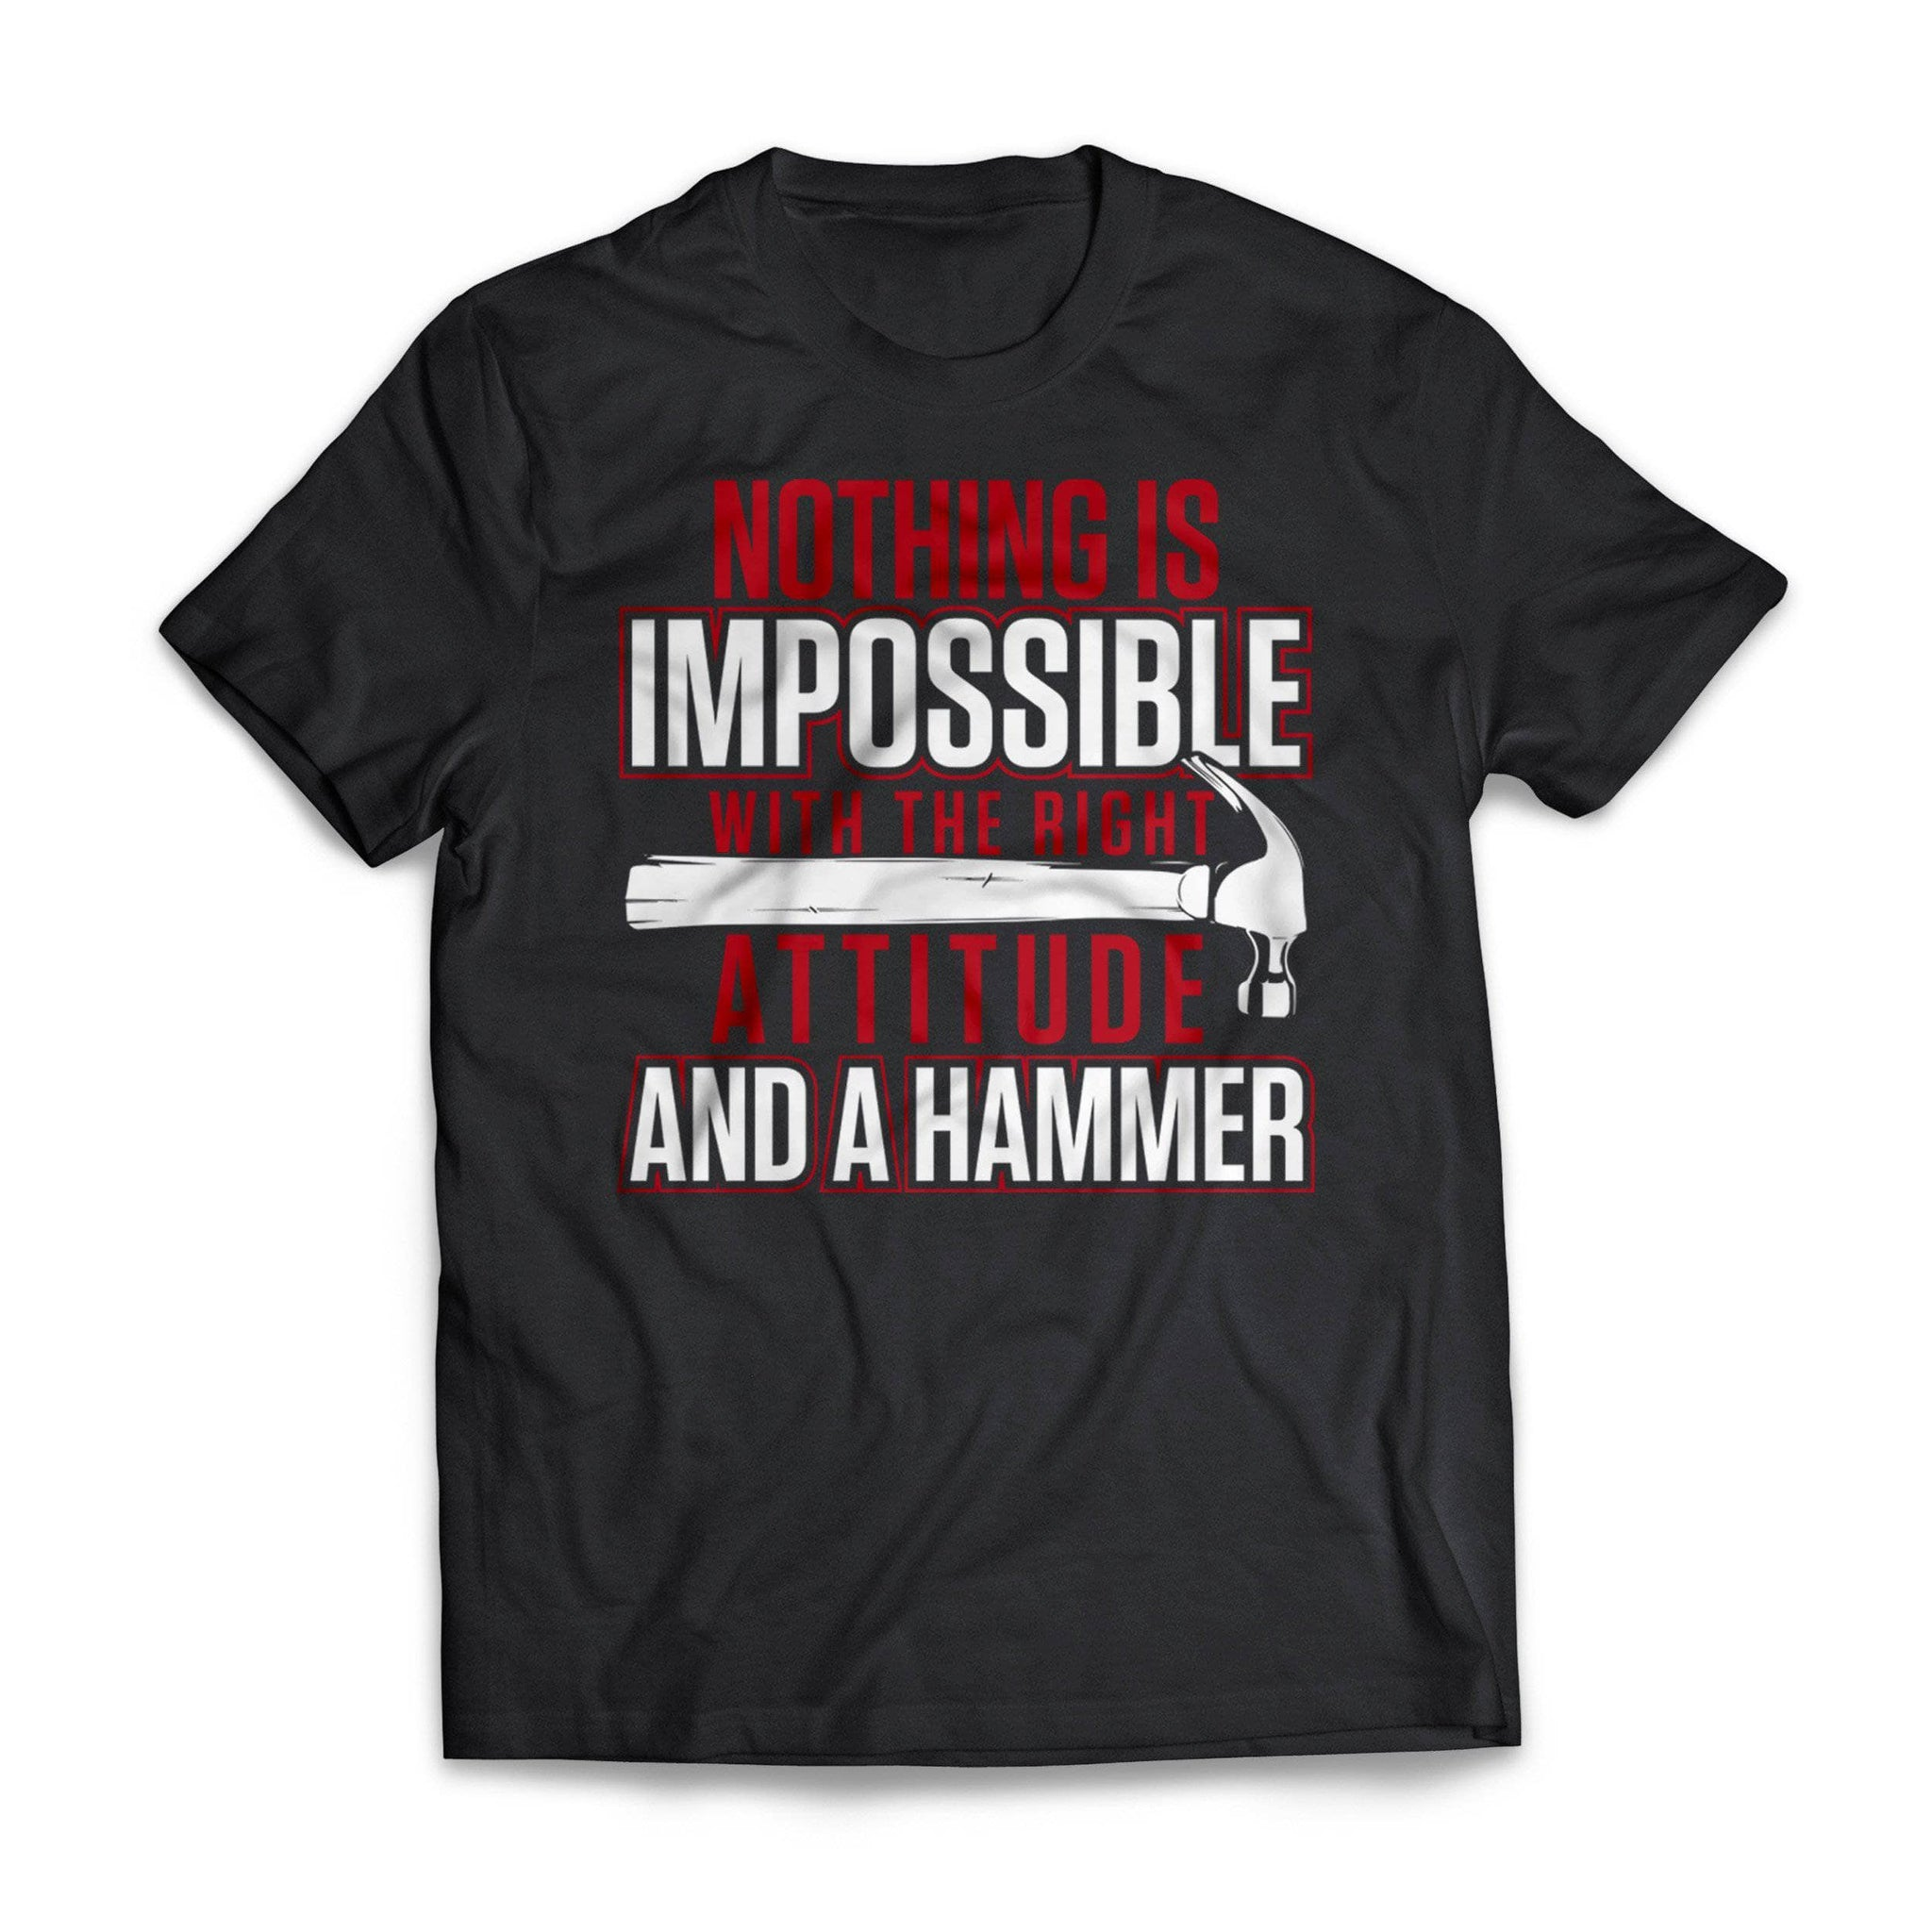 Attitude And Hammer